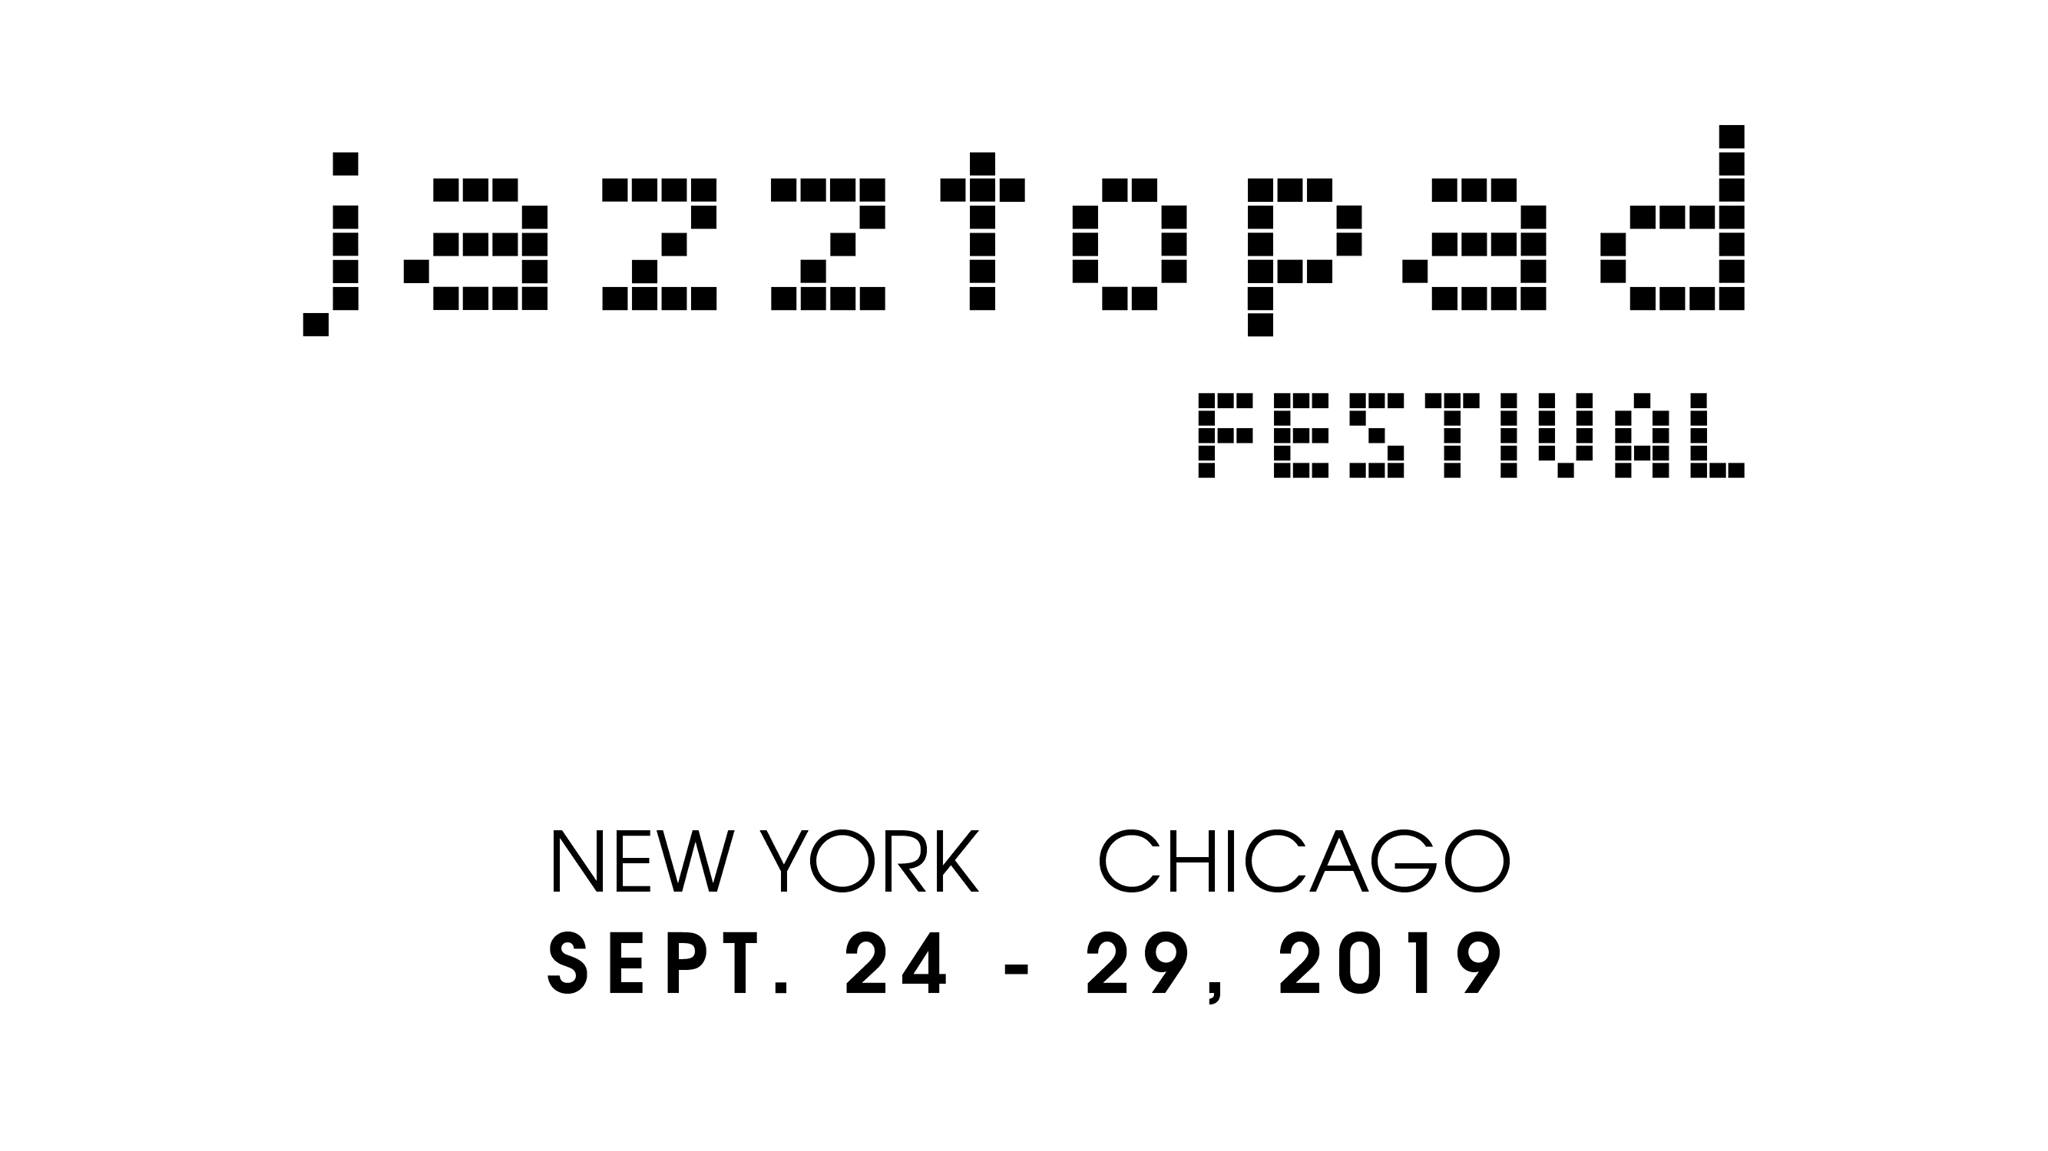 Wroclaw's Jazztopad Festival in New York and Chicago